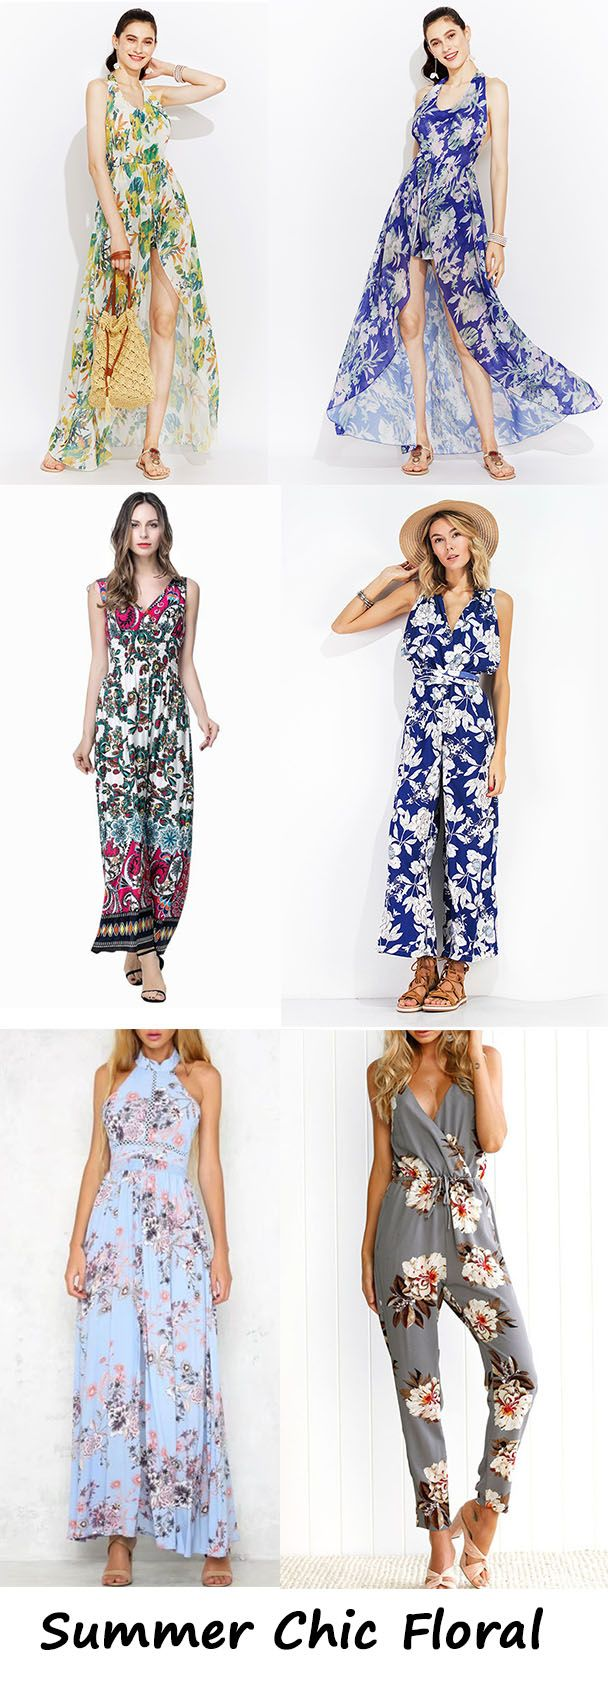 Chic Floral Patterns